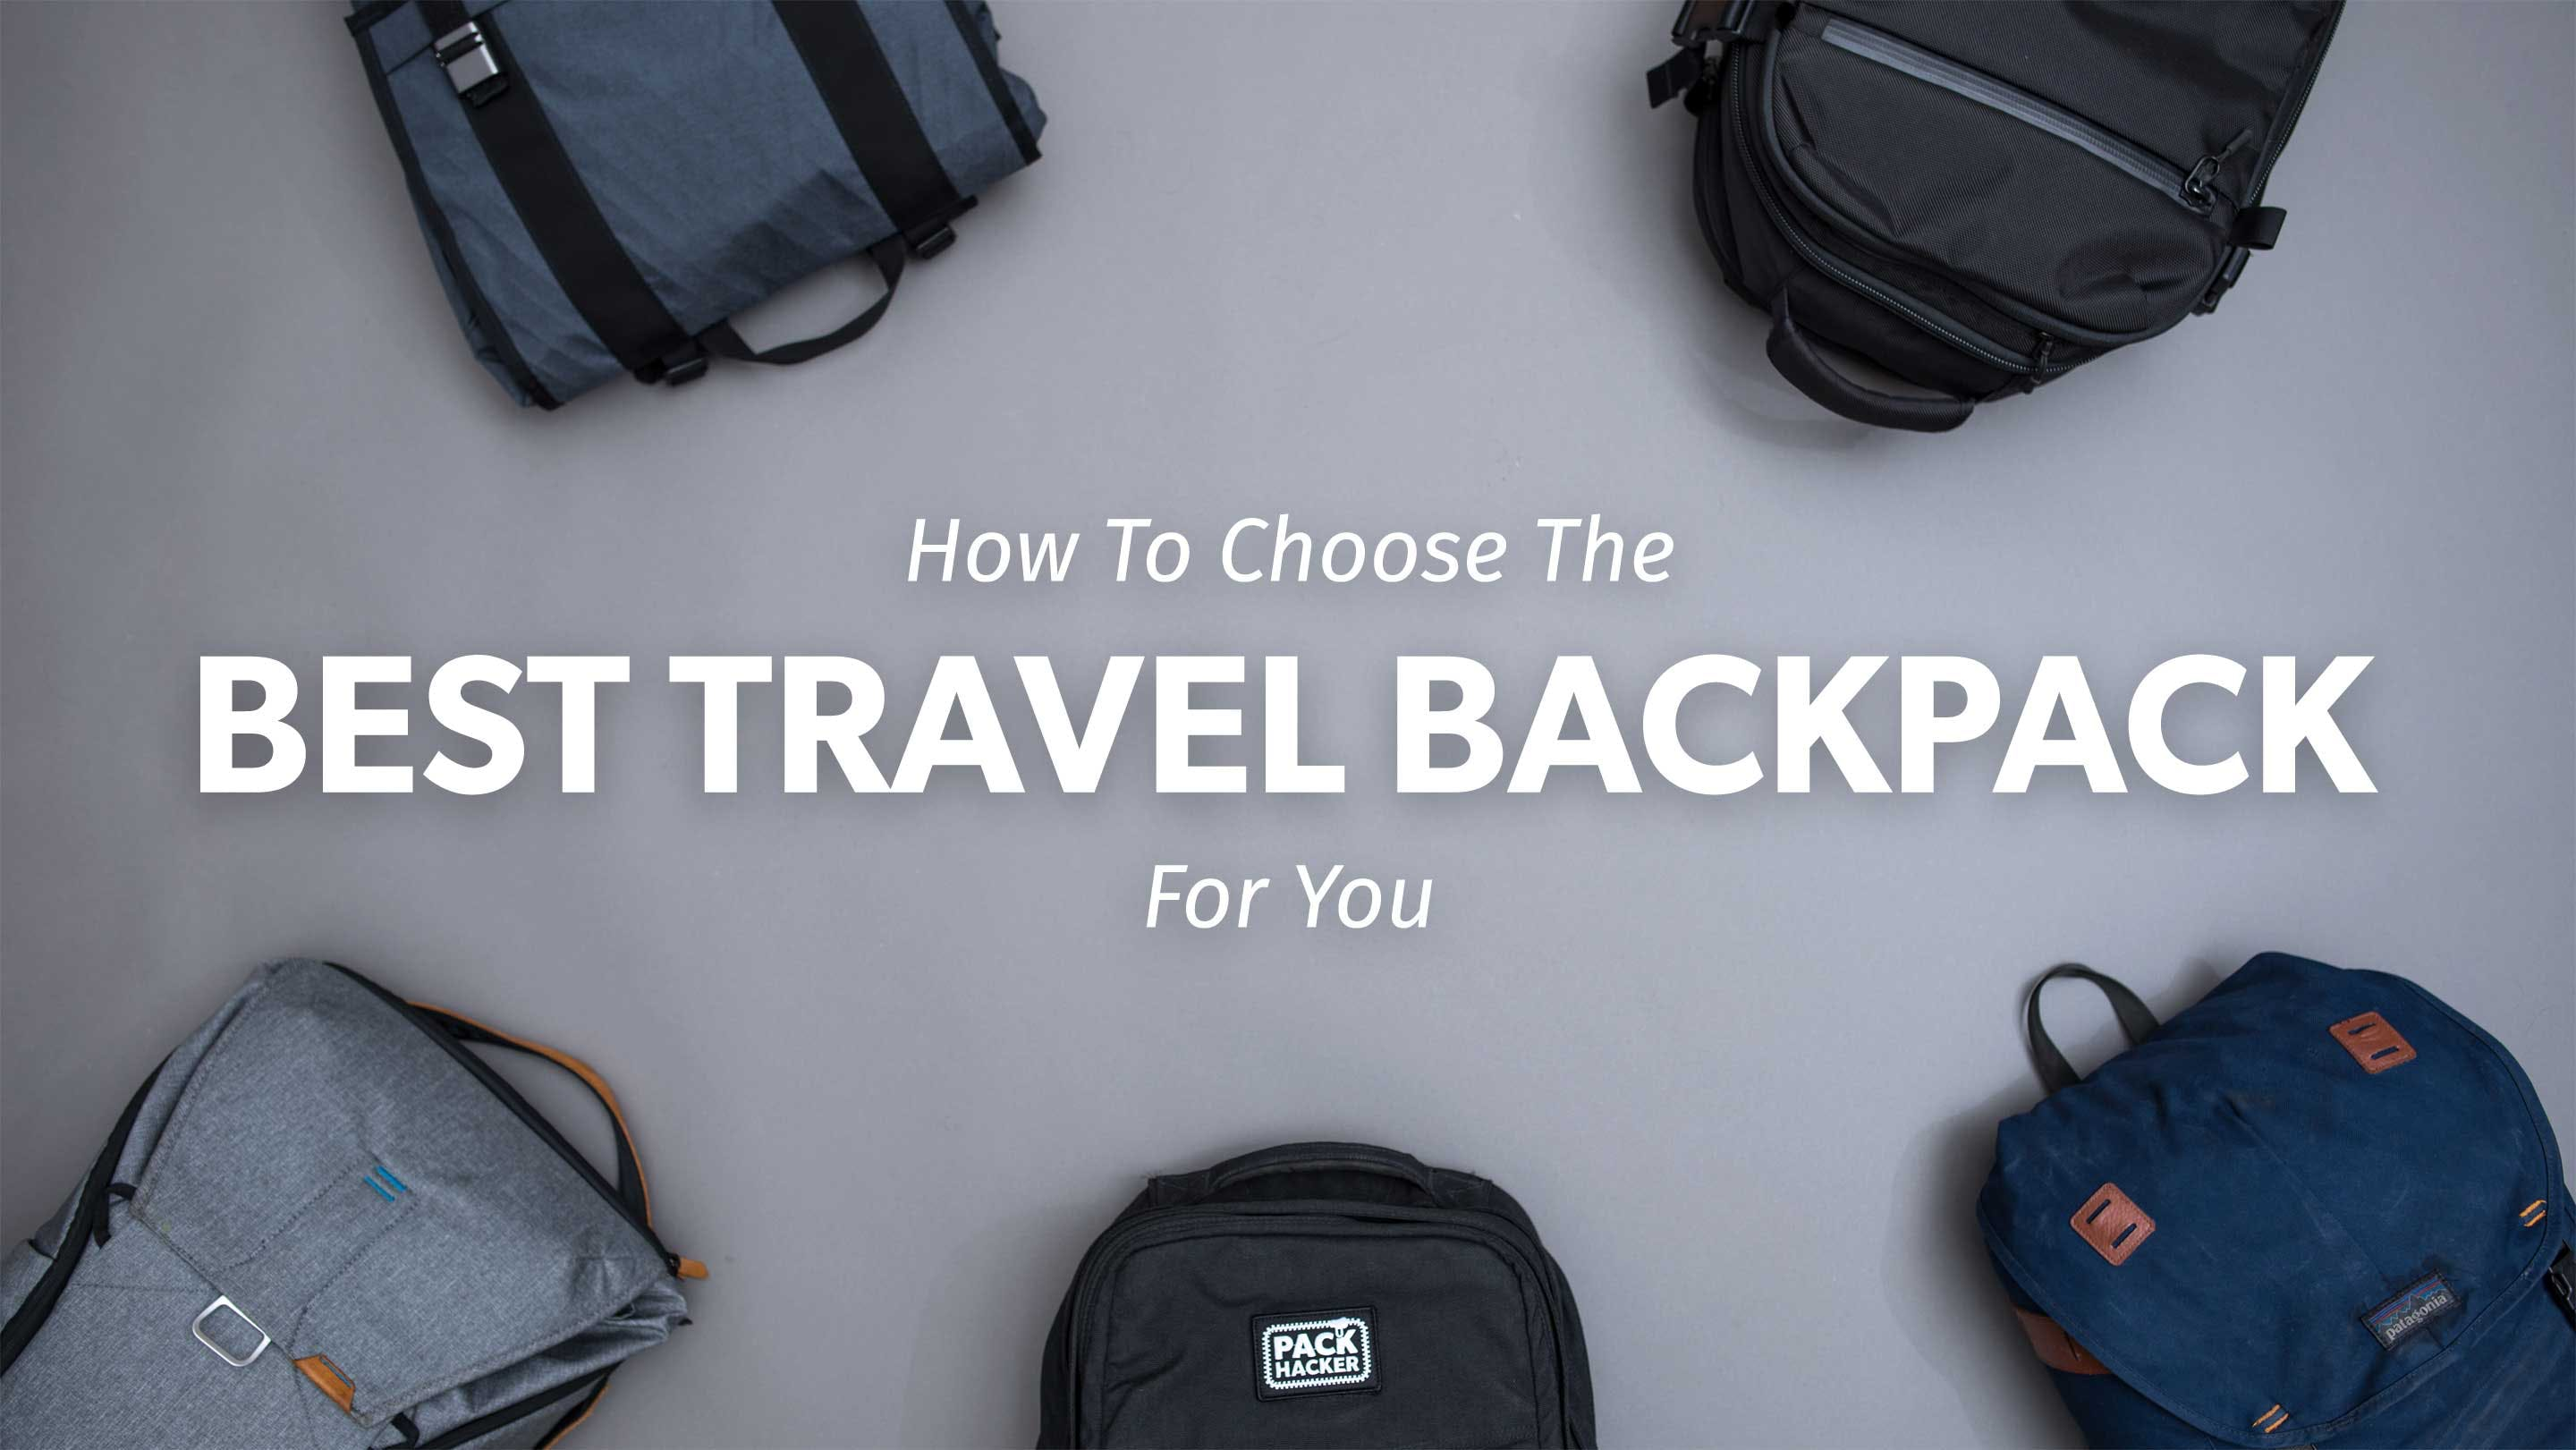 Best Travel Backpack  How To Pick In 2019   Pack Hacker 35a0aa994c